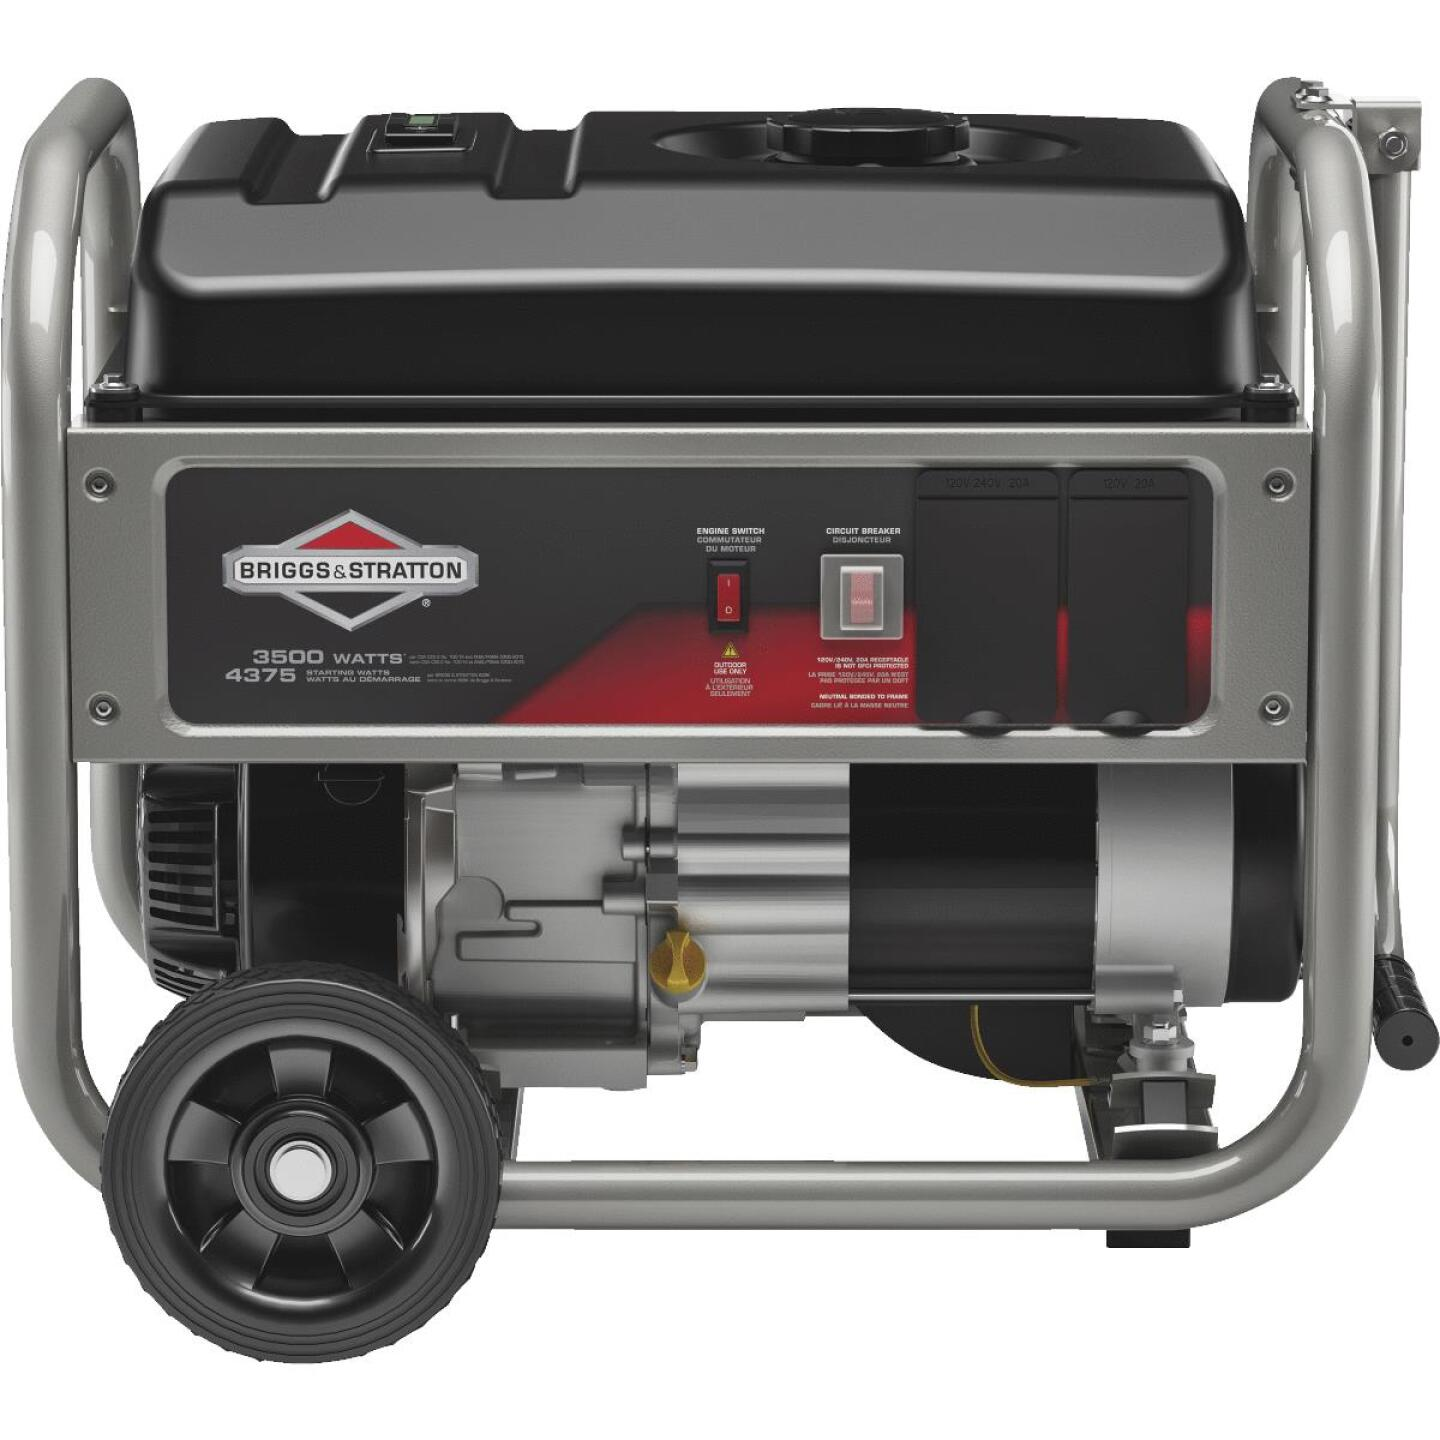 Briggs & Stratton 3500W Gasoline Powered Portable Generator Image 1